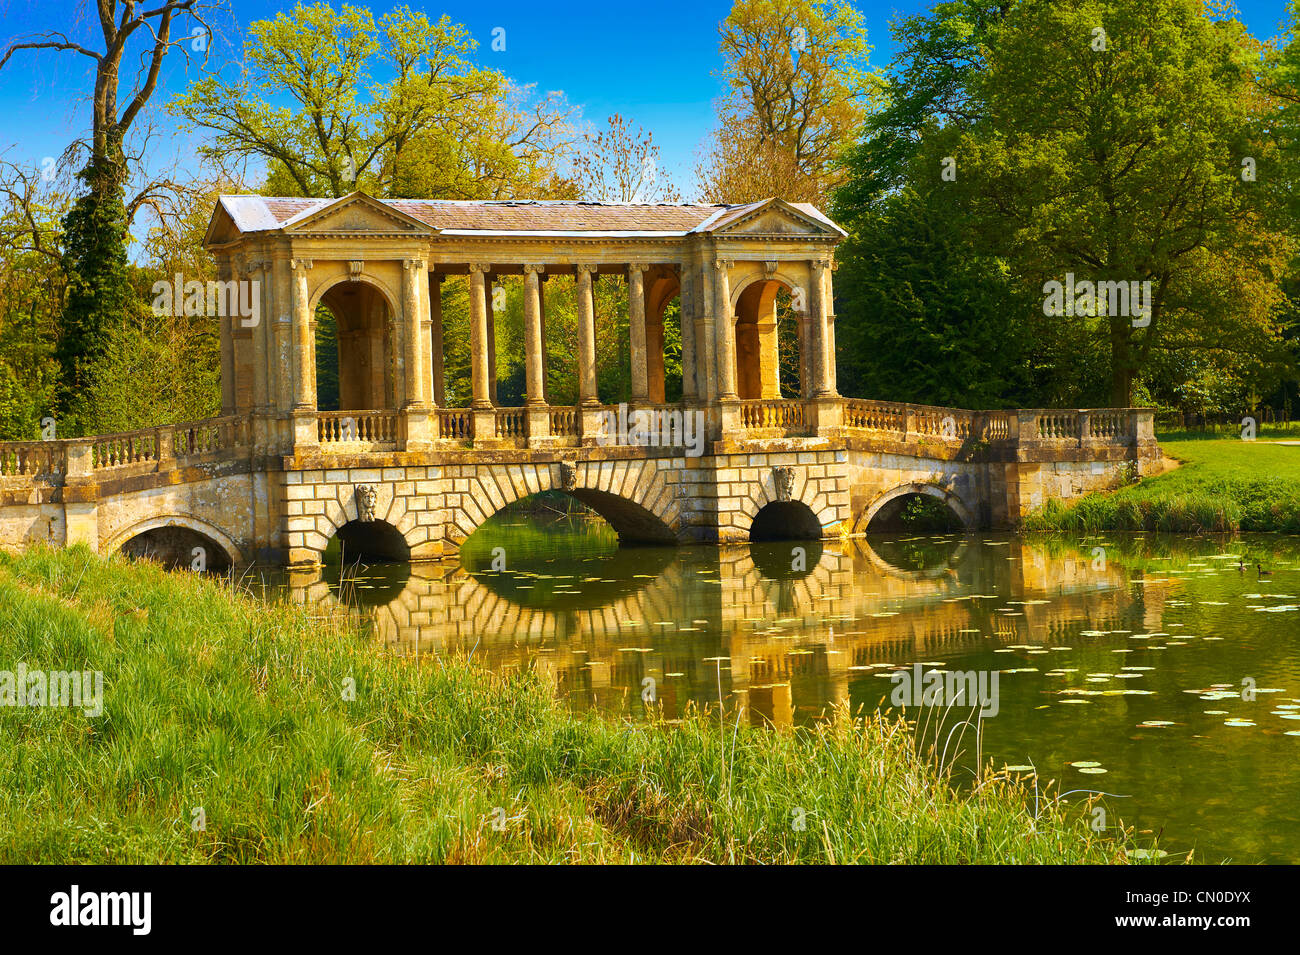 Palladian  Style bridge in the landscape gardens of Stowe House, the former residence of the Dukes of Buckingham - Stock Image